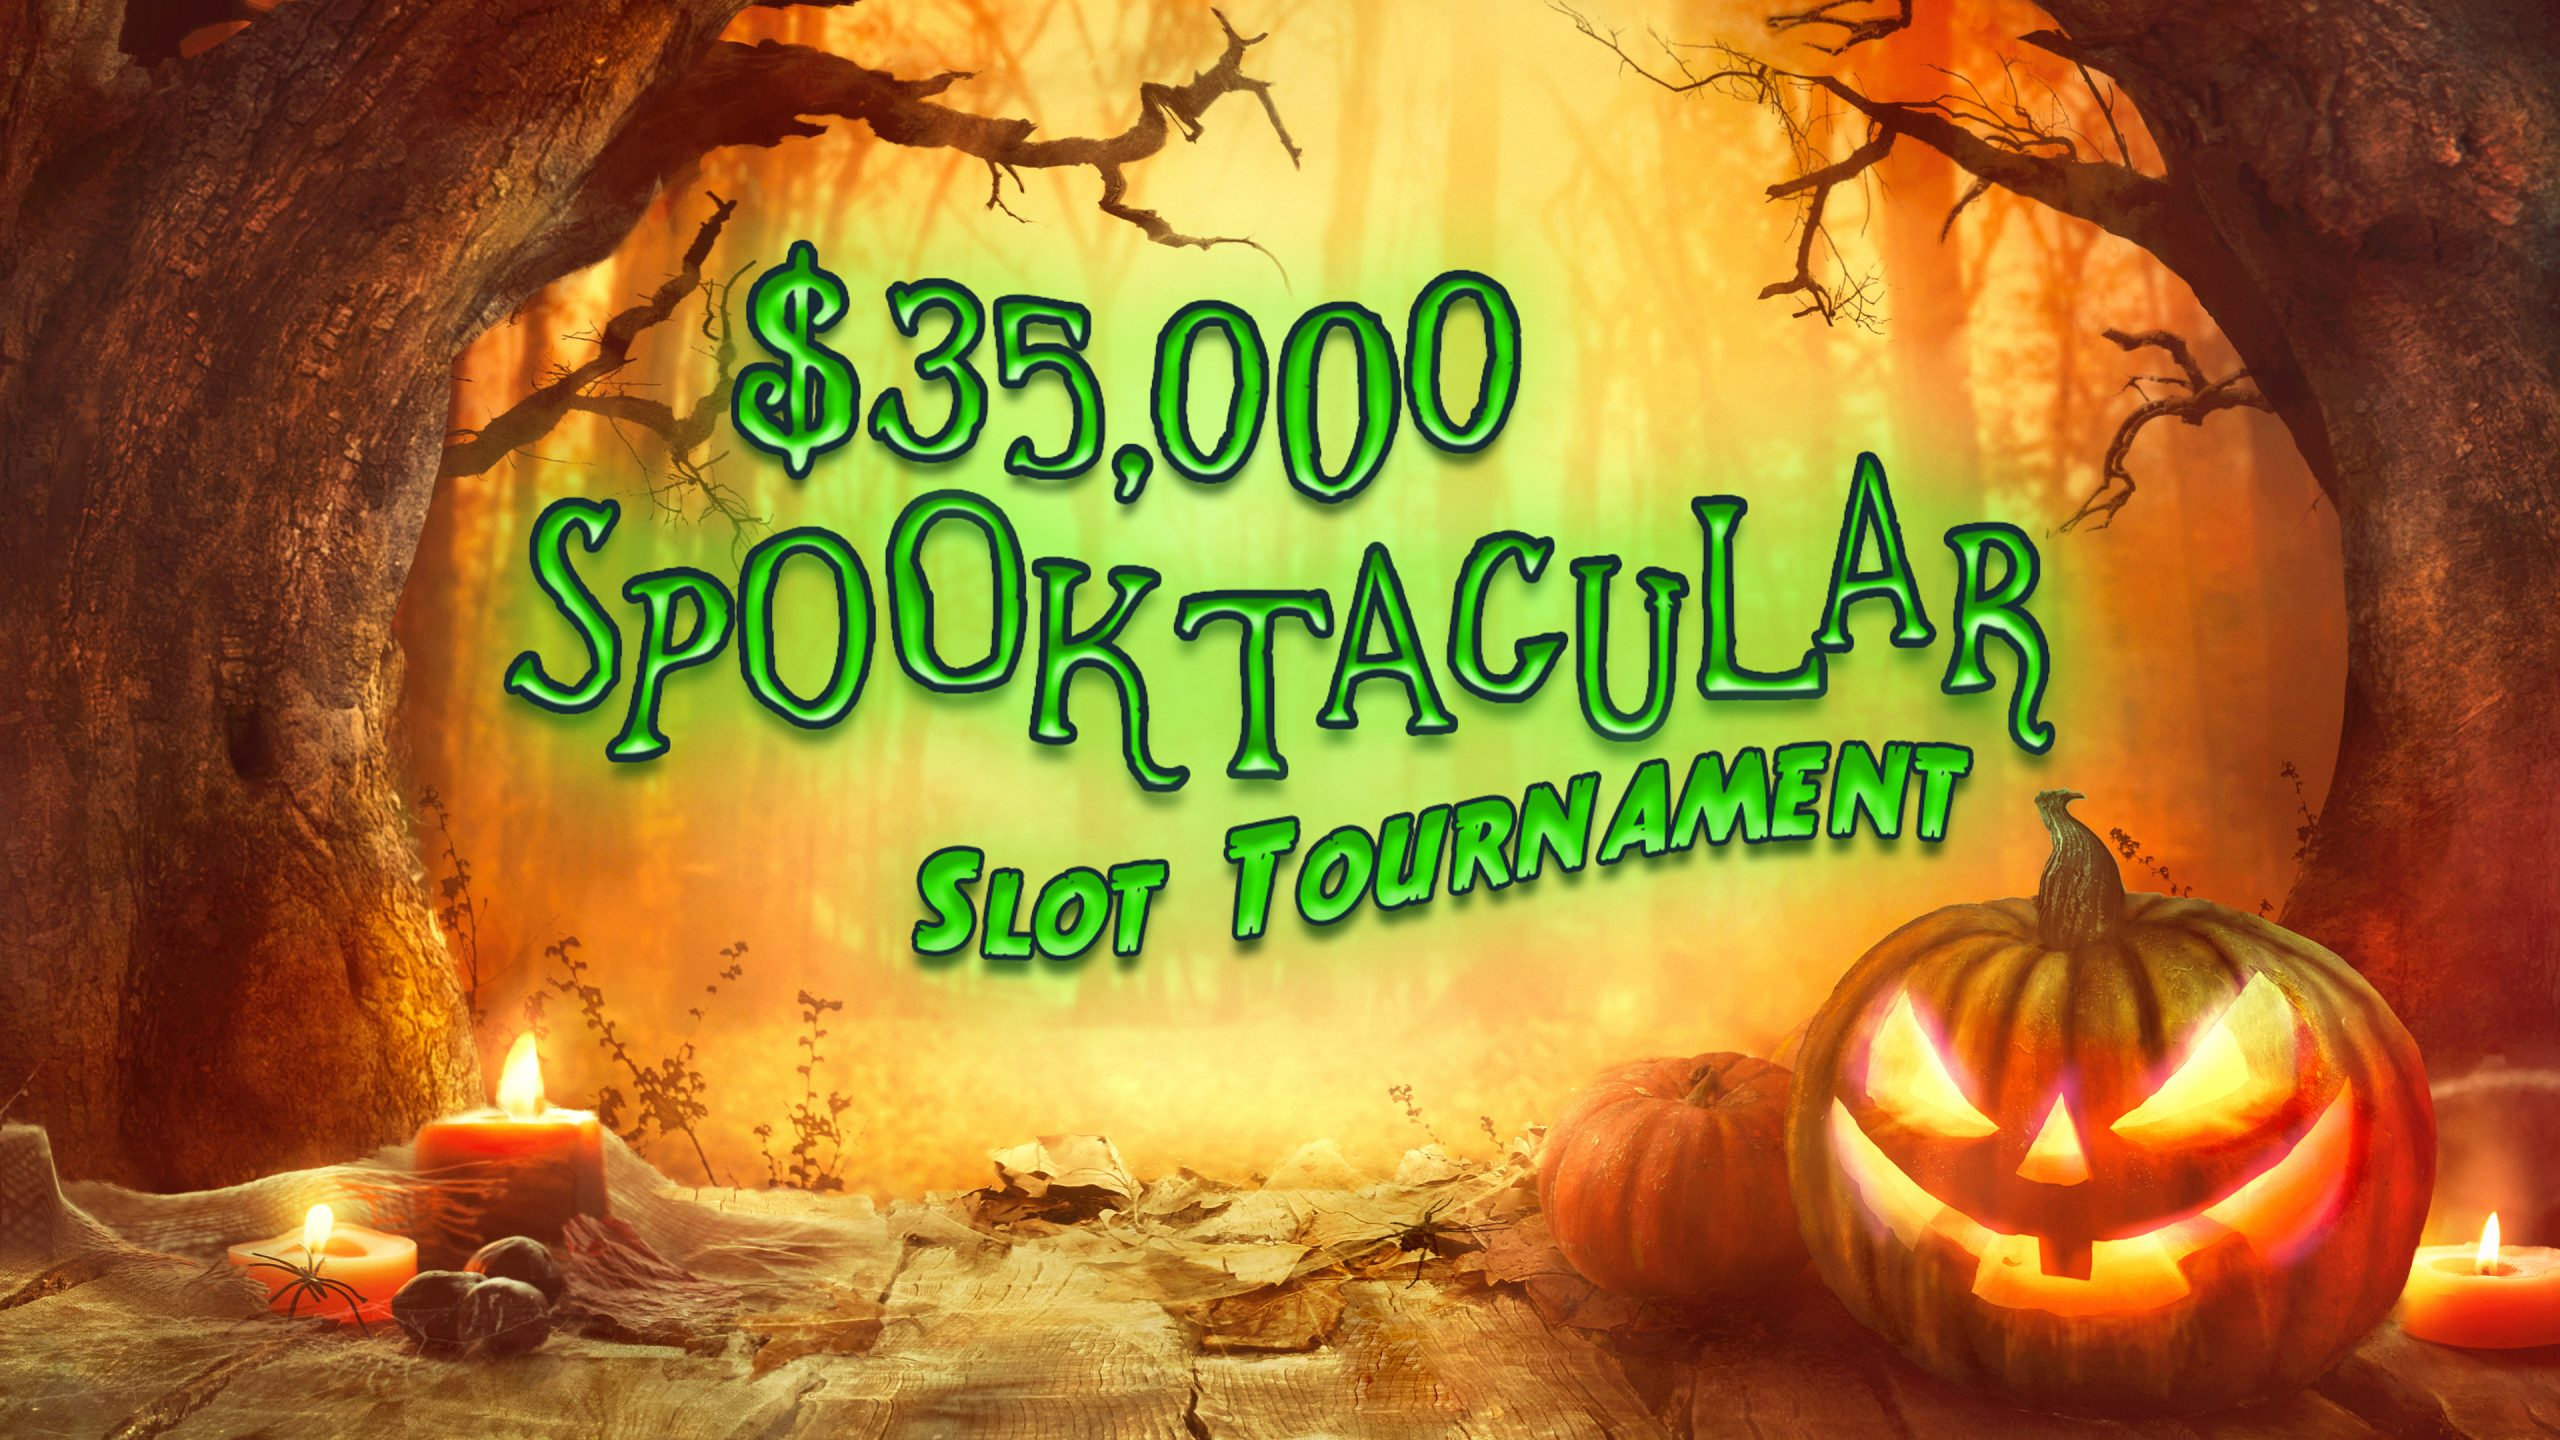 $35,000 Spooktacular Slot Tournament